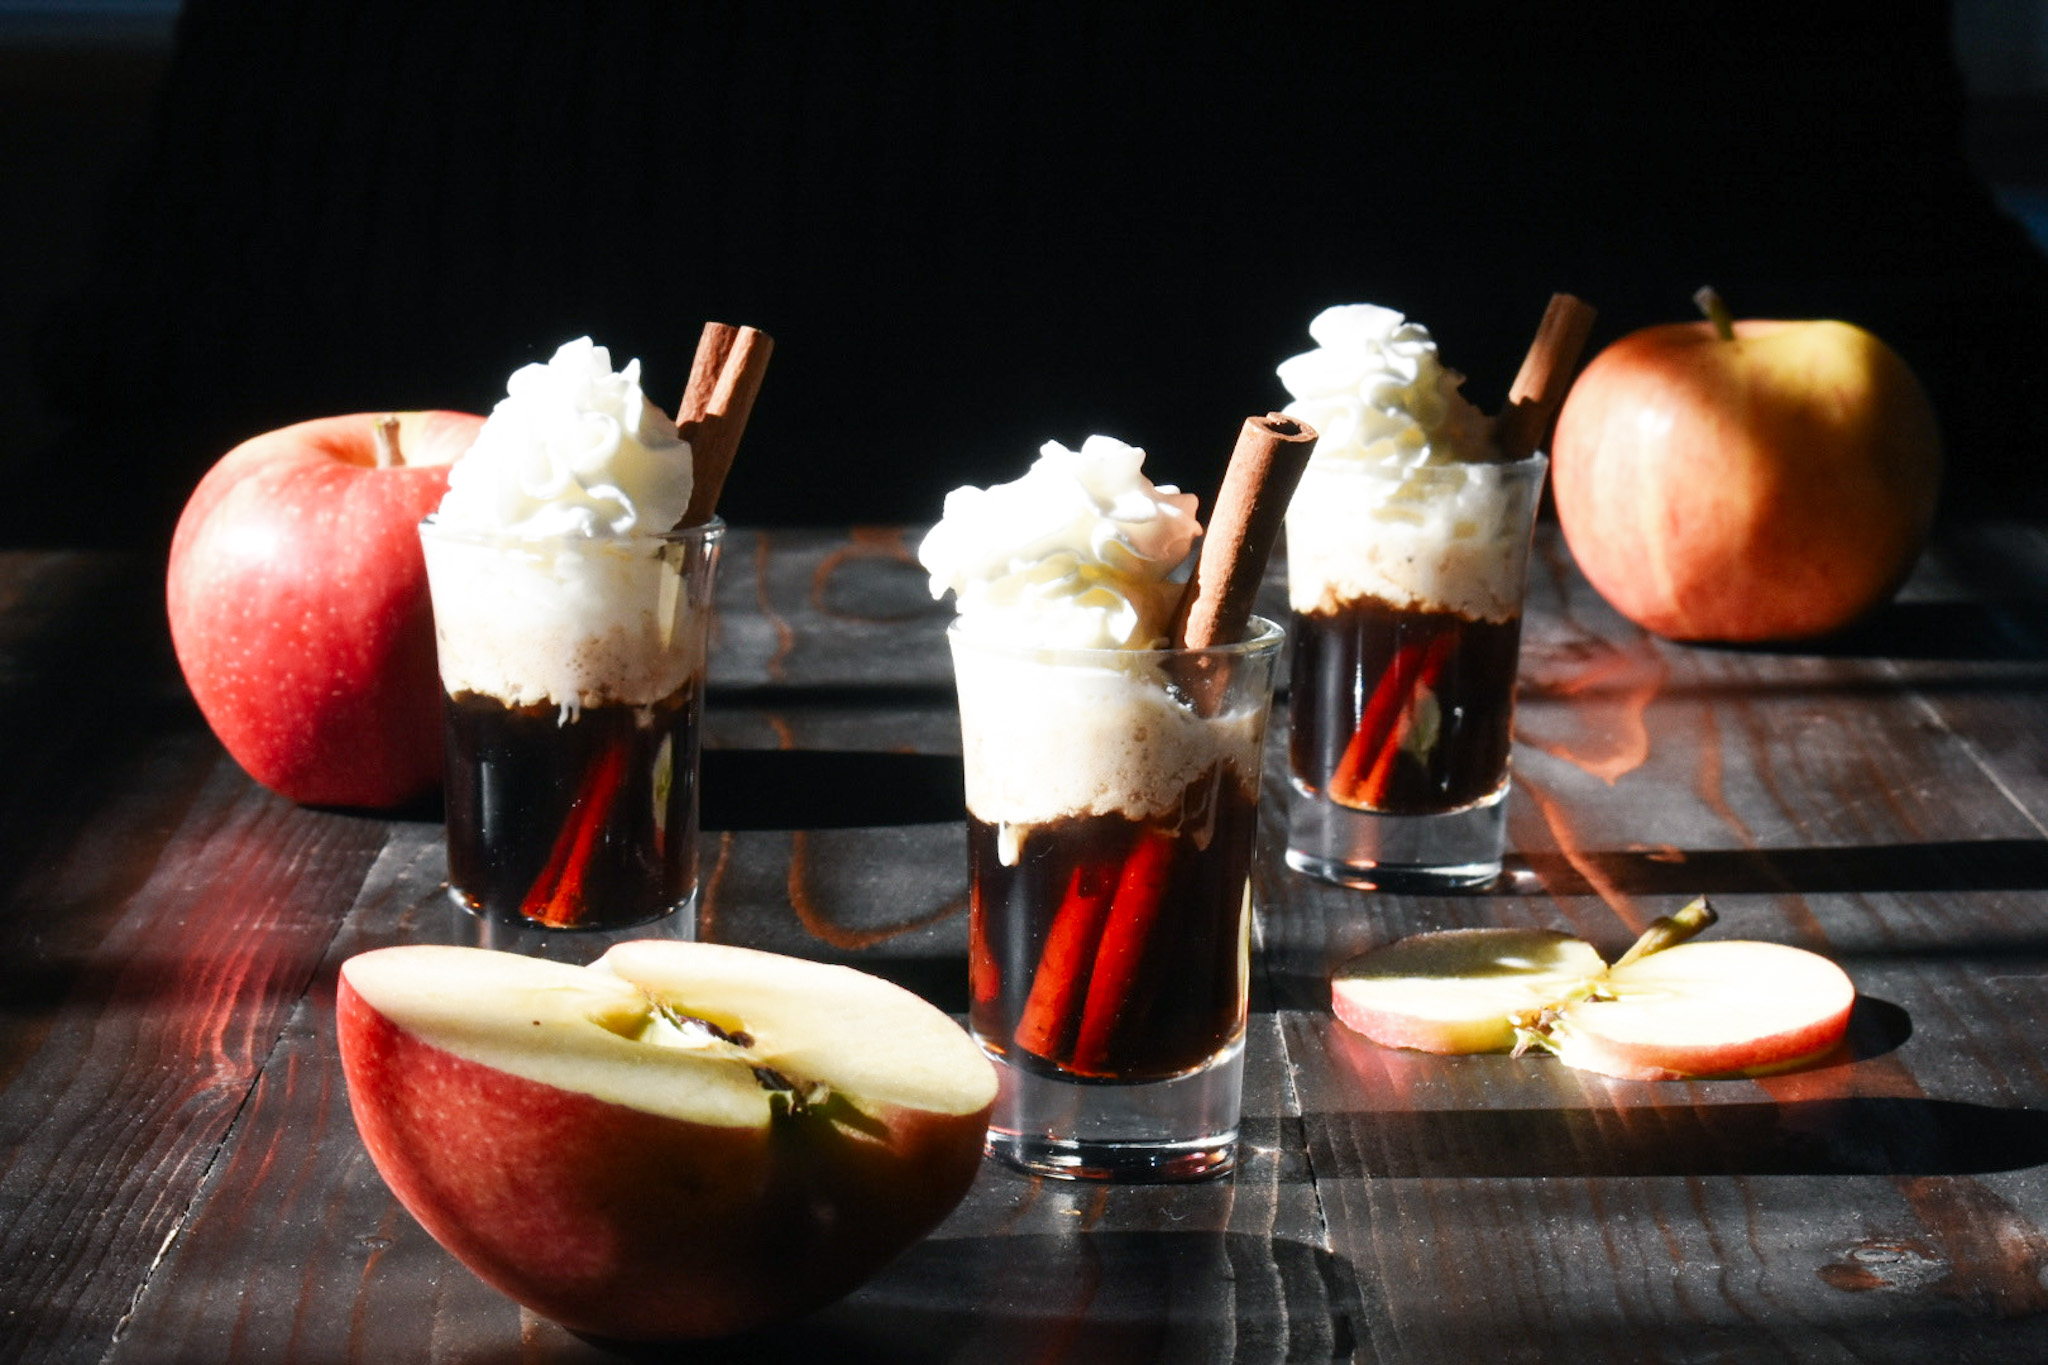 apple shots with whipped cream and cinnamon stick and apples